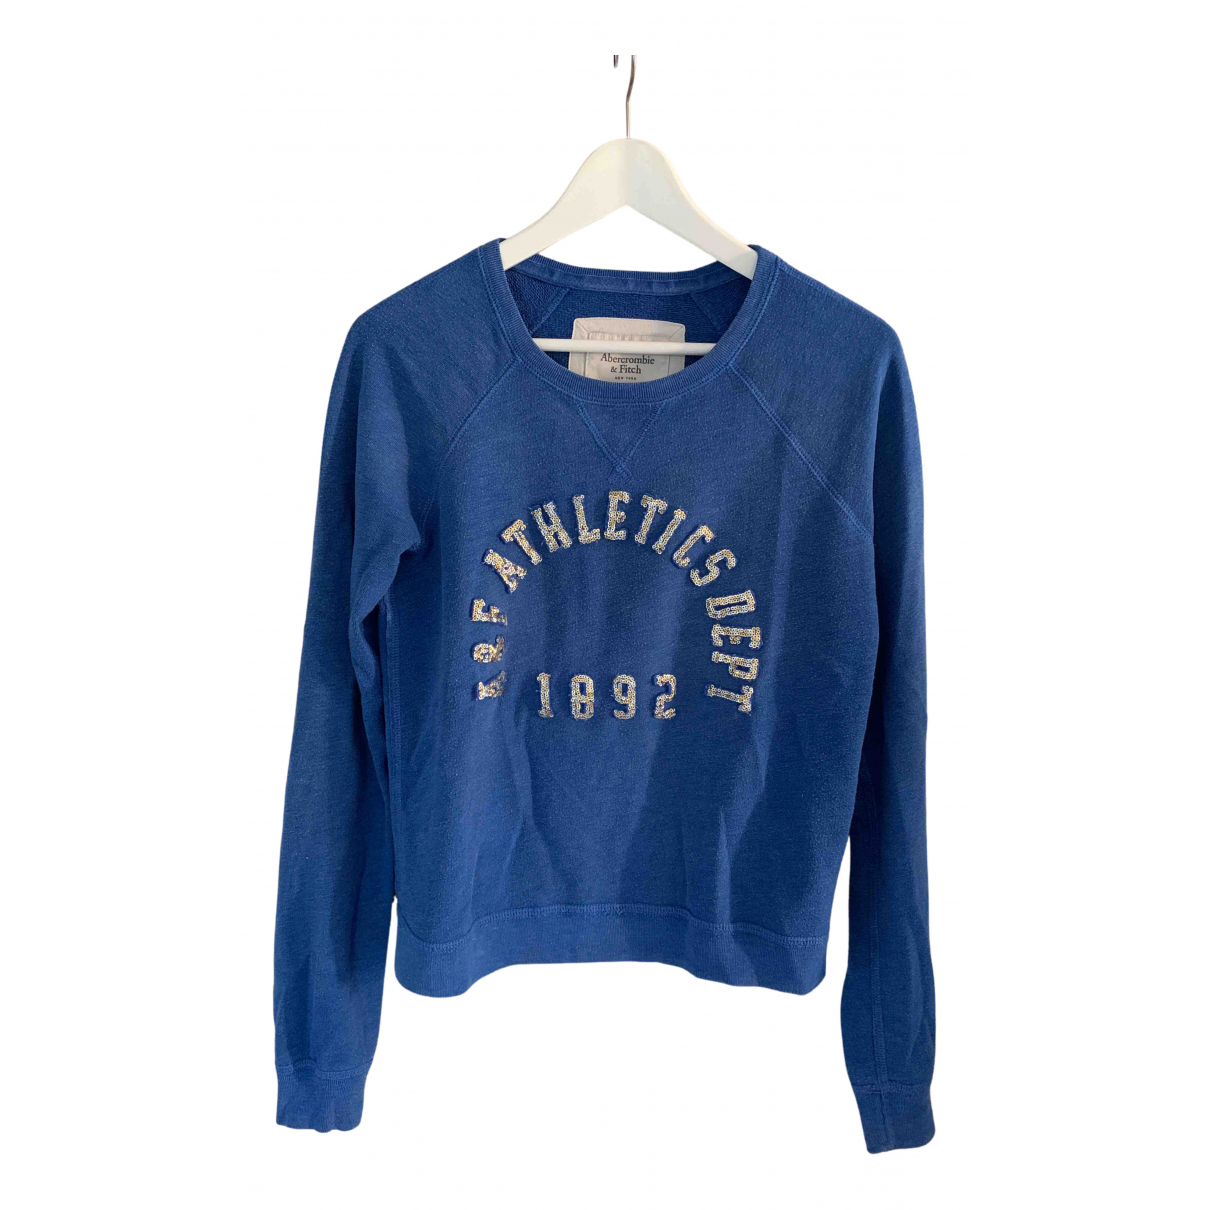 Abercrombie & Fitch \N Blue Cotton Knitwear for Women S International